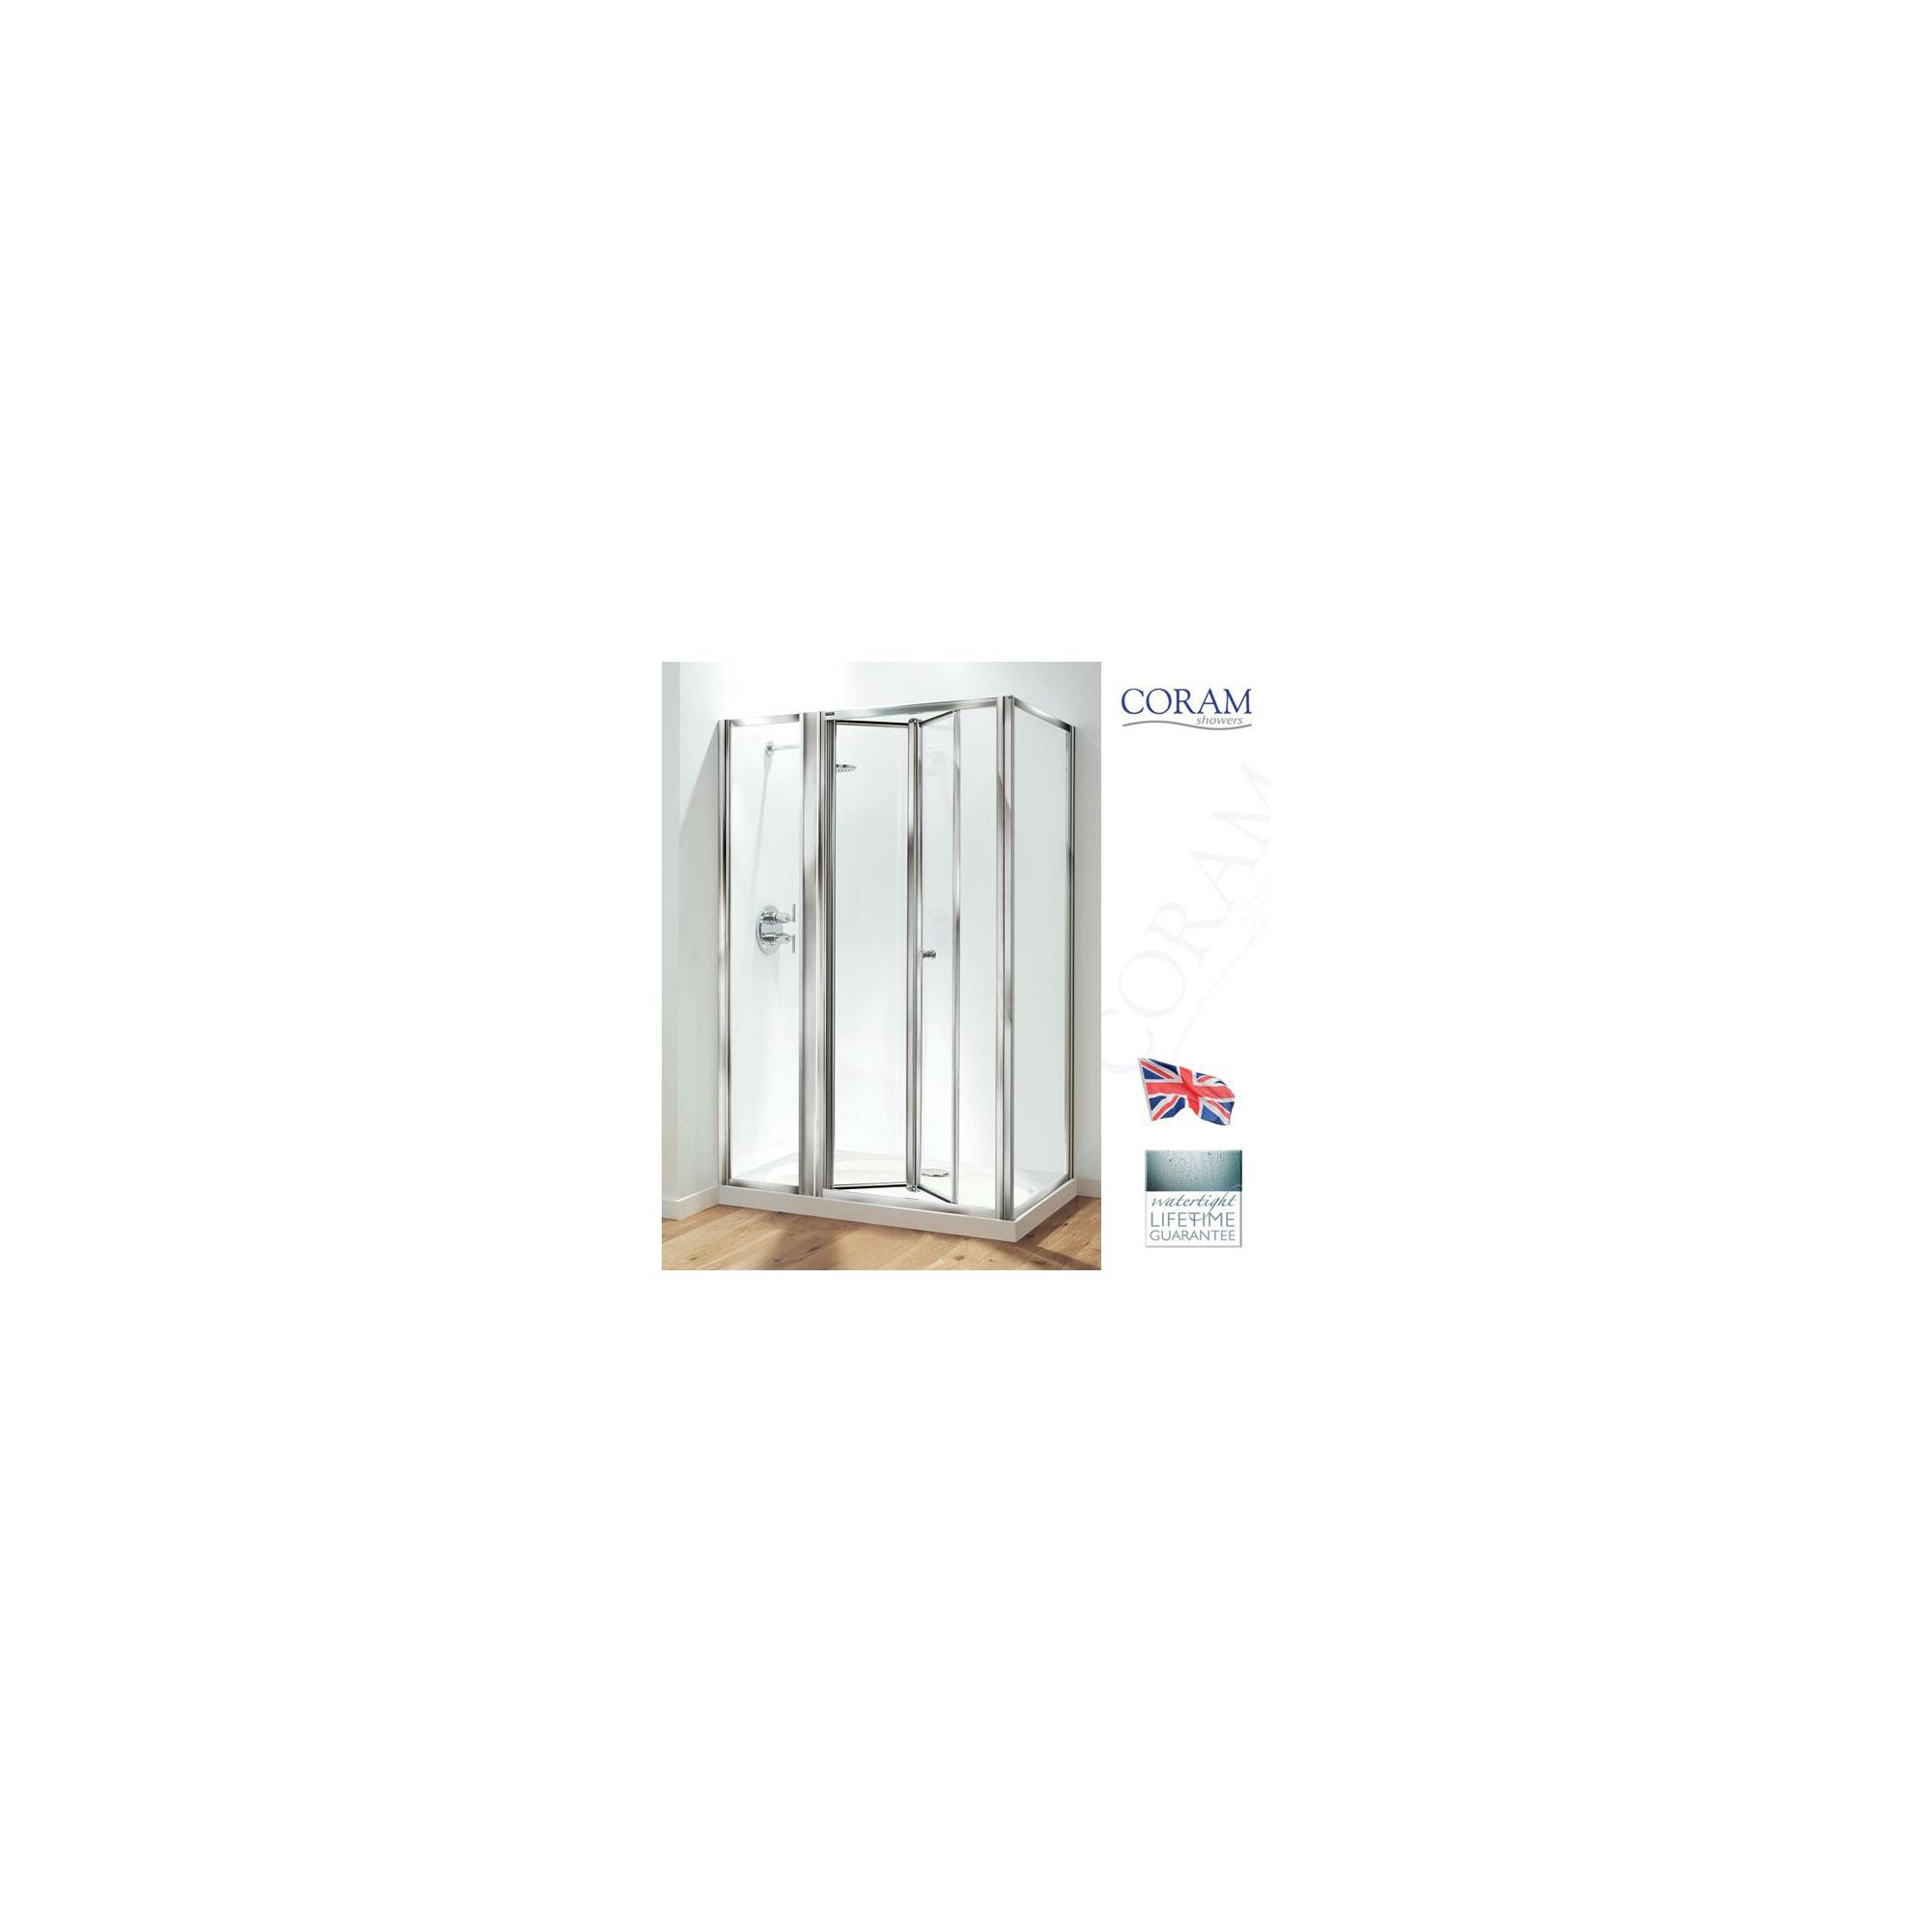 Coram Optima Inline Bi-Fold Door Shower Enclosure, 1200mm x 760mm, Low Profile Tray, 6mm Glass at Tescos Direct